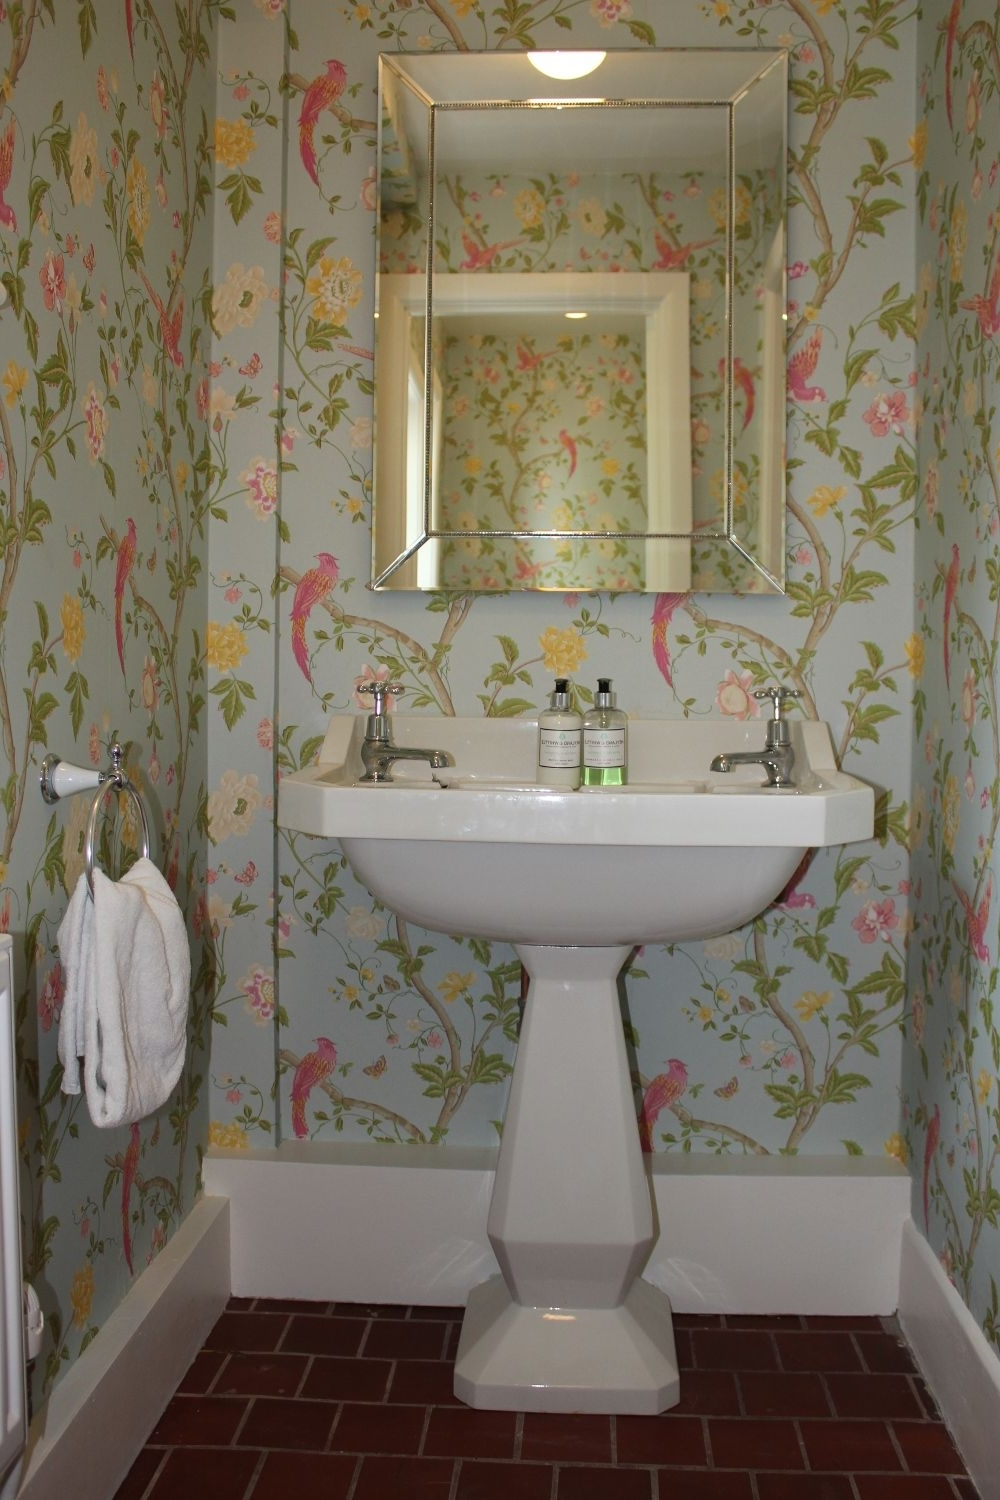 Cloakroom With Floral Wallpaper | Downstairs Toilet, Small Downstairs Bathroom Wallpaper